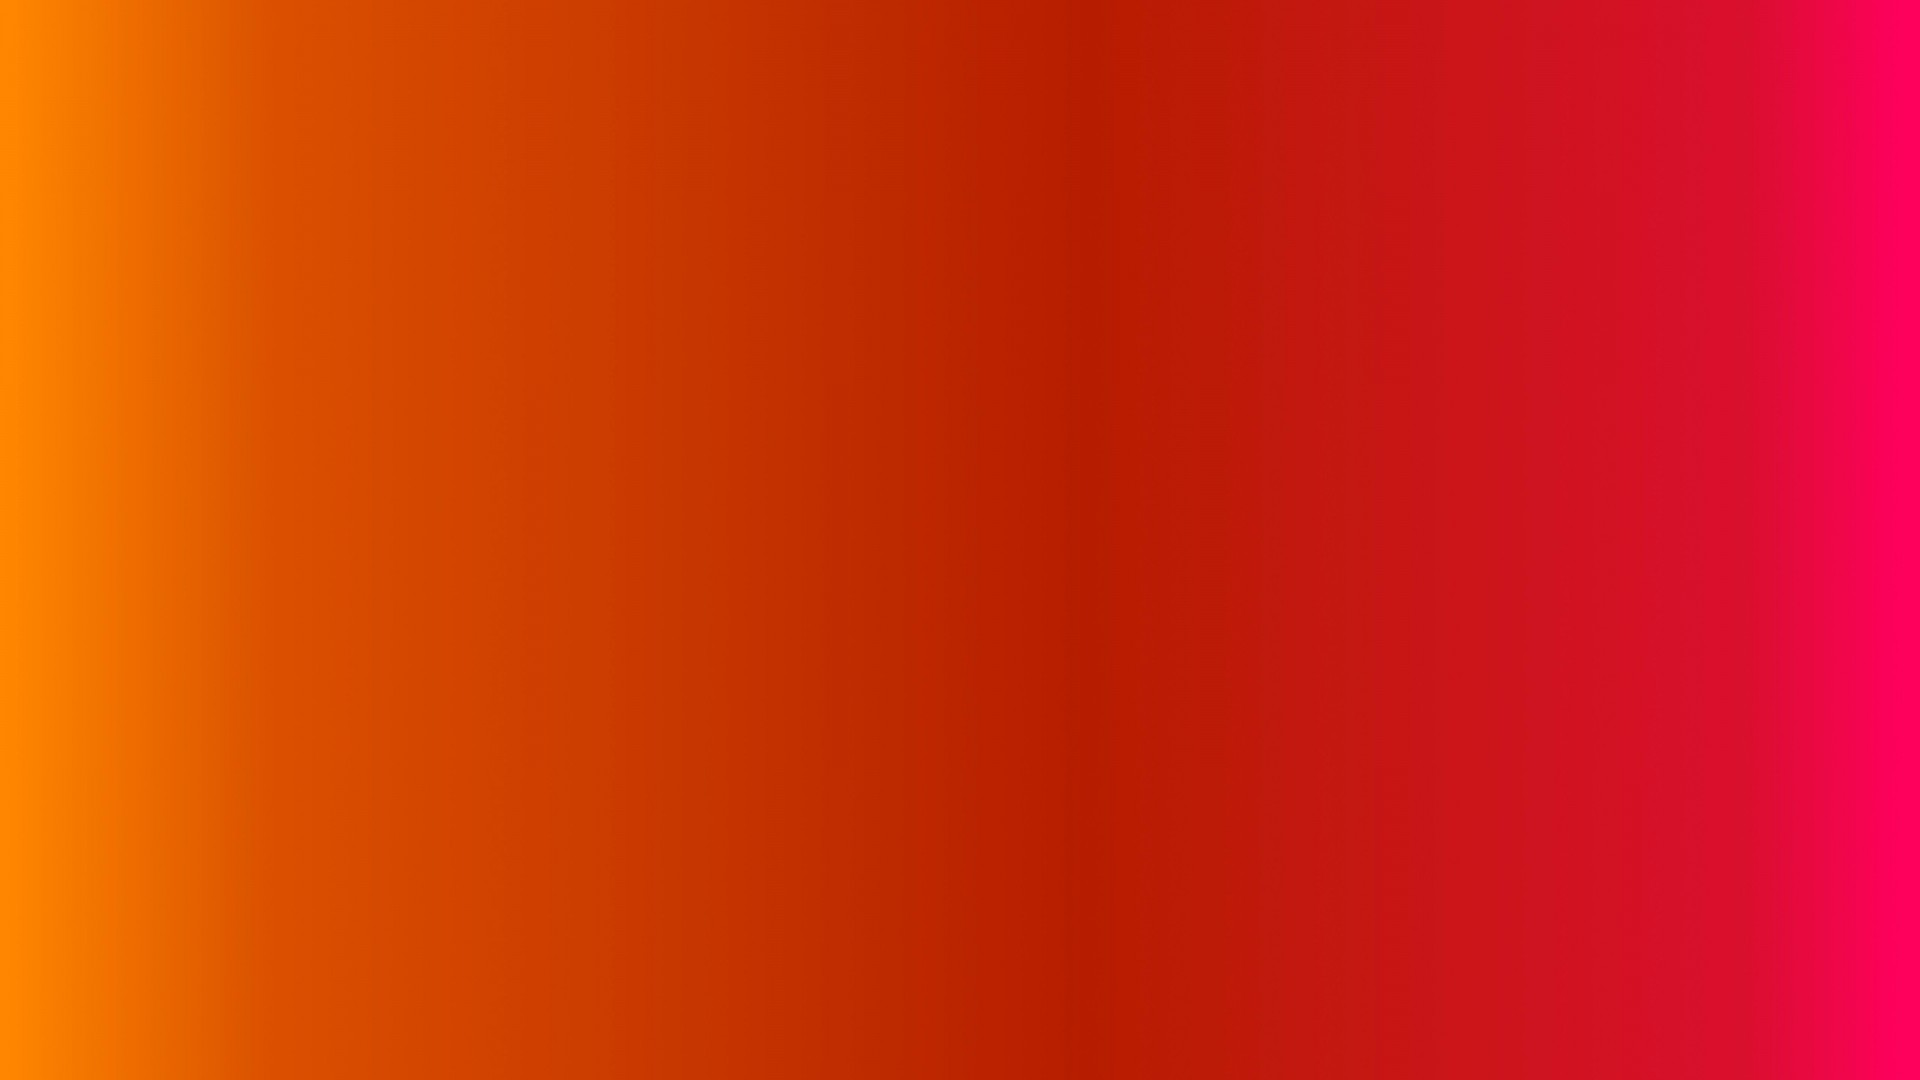 Shutterstock Hd Wallpapers Orange To Pink Background Free Stock Photo Public Domain